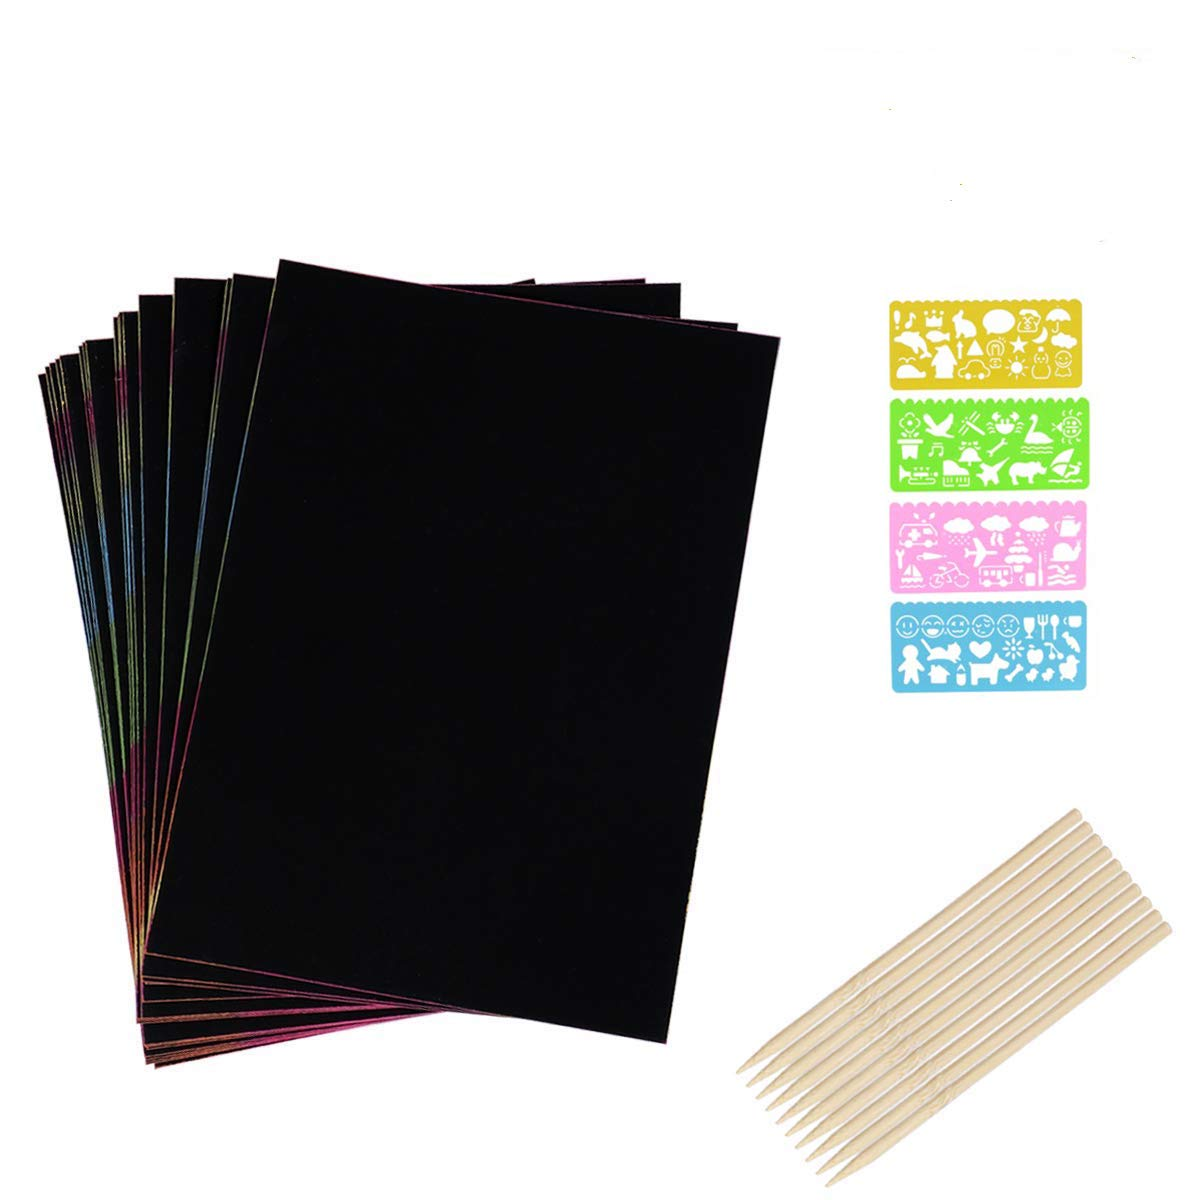 JBSON Scratch Art, 30 Sheets Scratch Paper Scratch Art Combo Rainbow Scratch Sheets Scratch Art Doodle Pad with 4 Drawing Template Stencil Rulers and 10 Wooden Styluses